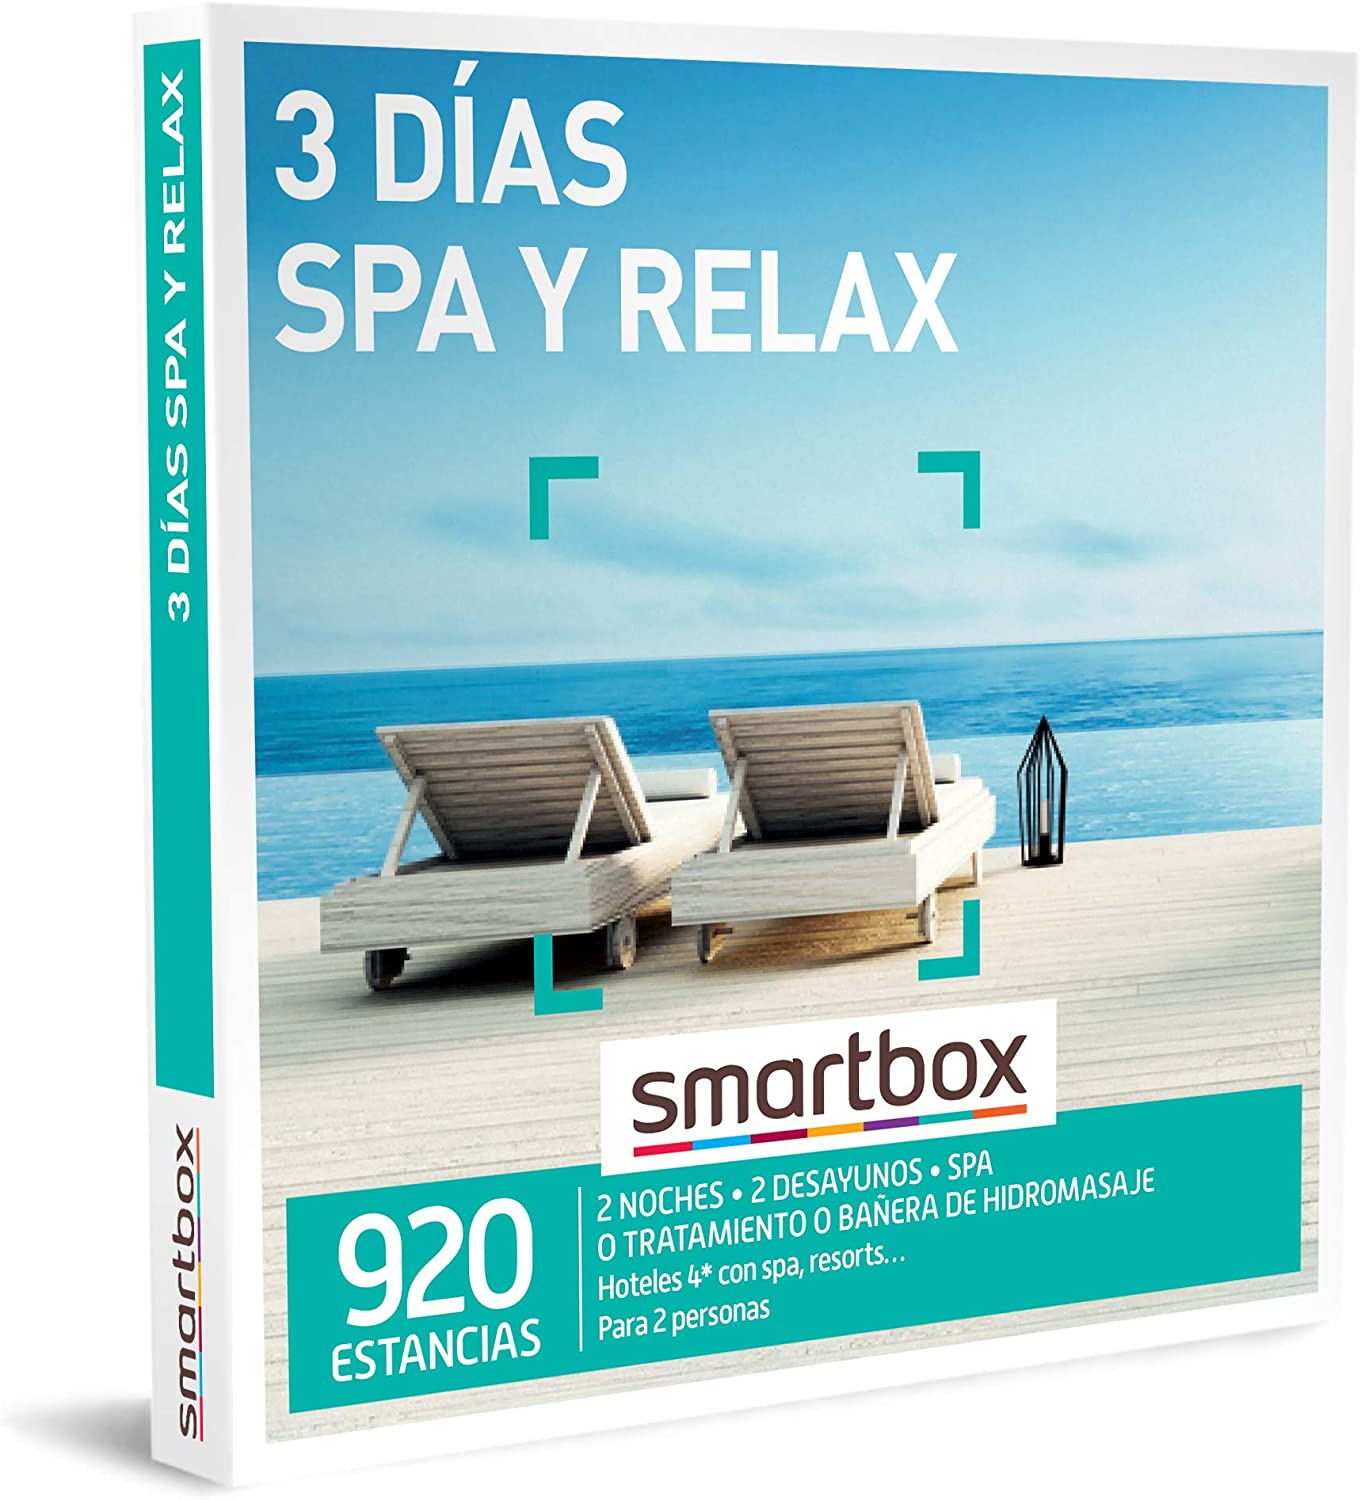 smartbox tres dias spa y relax